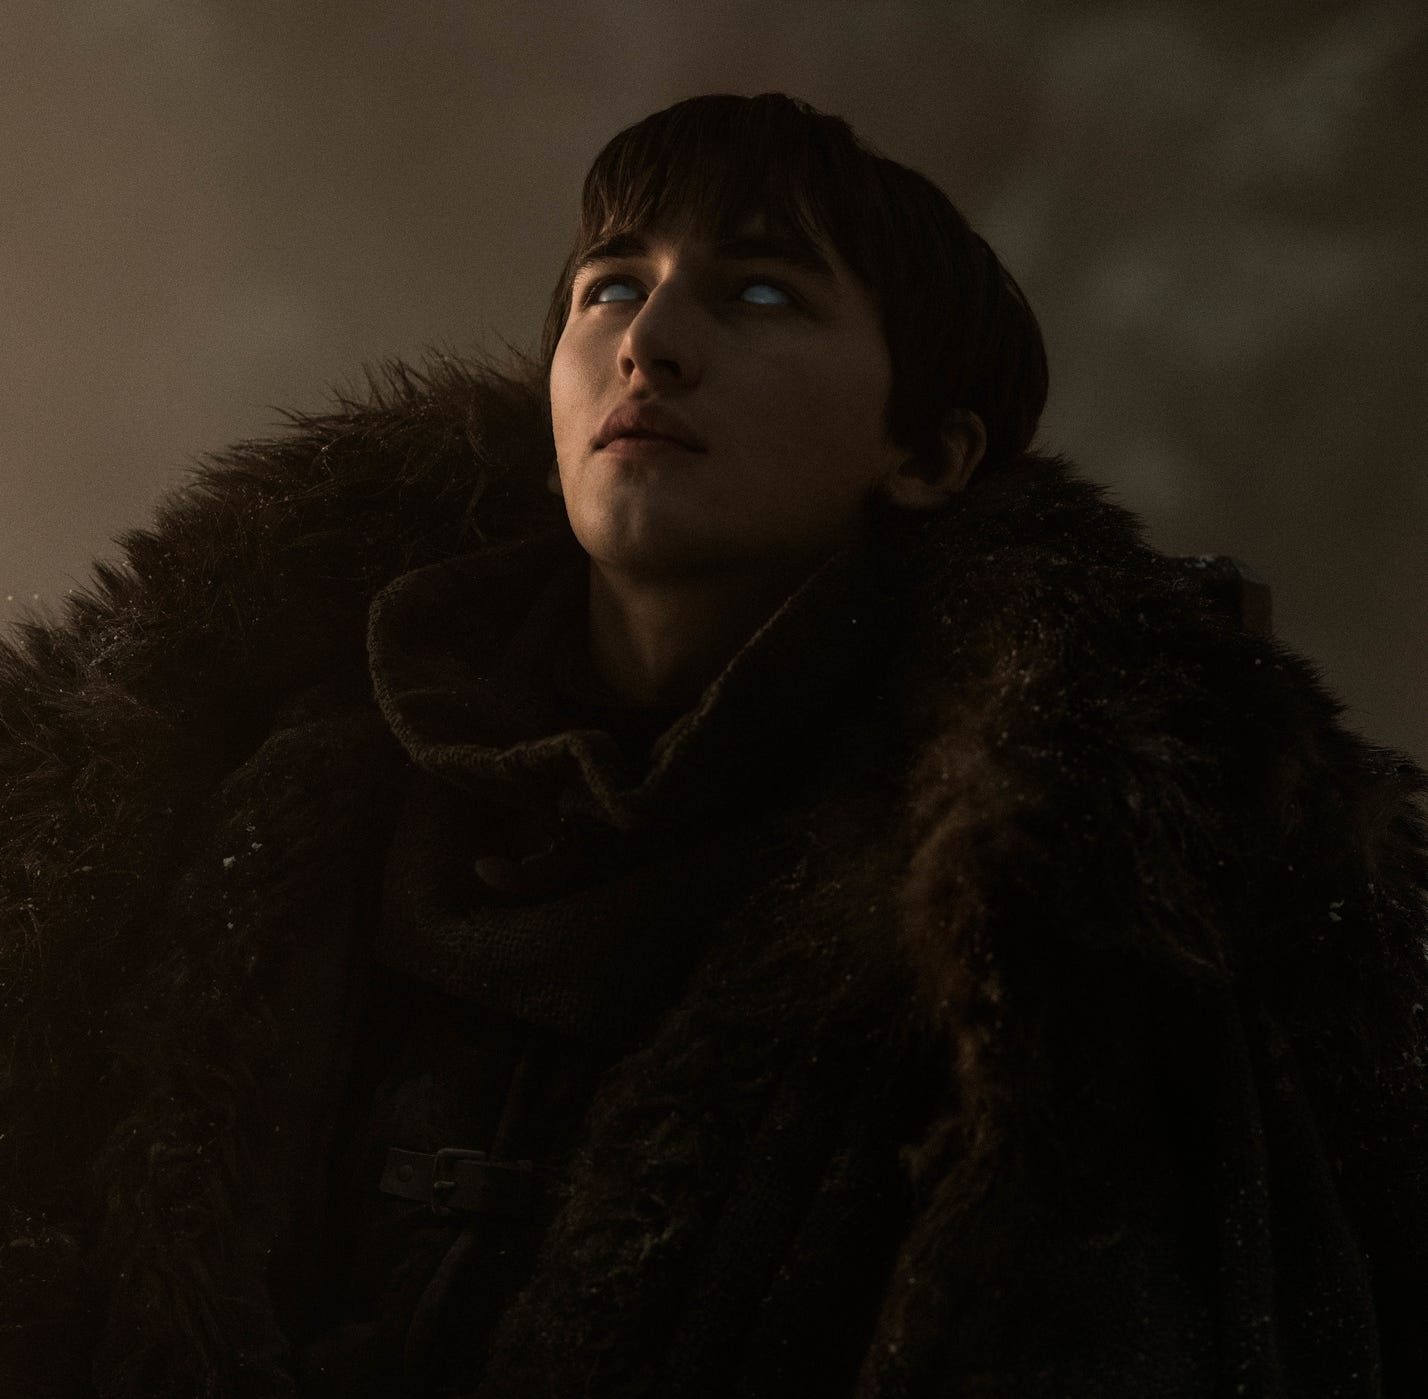 Three-Eyed Raven Bran (Isaac Hempstead Wright) is the bait to lure the Night King in 'The Long Night,' Sunday's episode of 'Game of Thrones.'